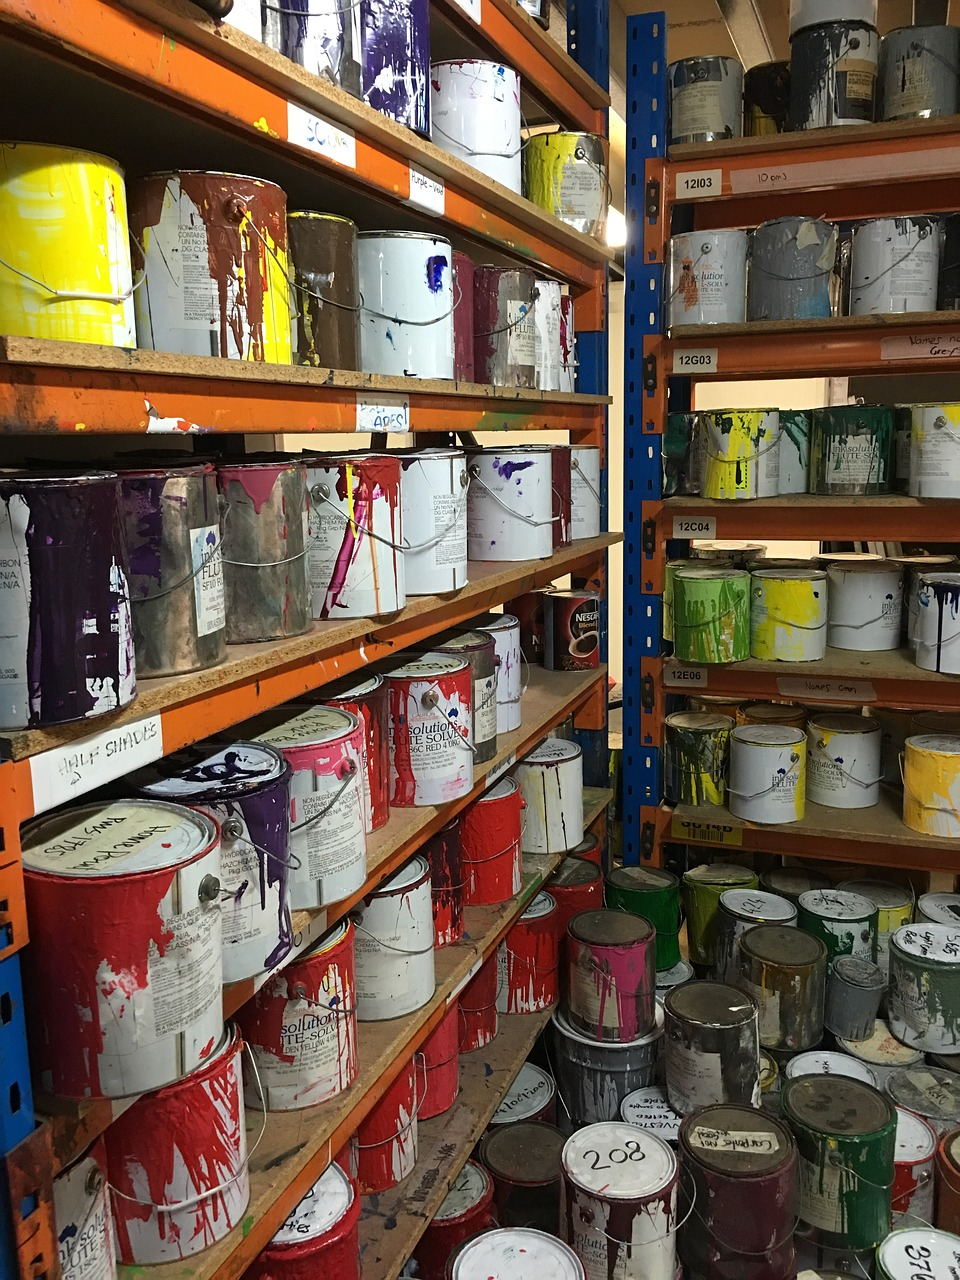 Partly used tins of paint on shelves, for reusing rather than recycling